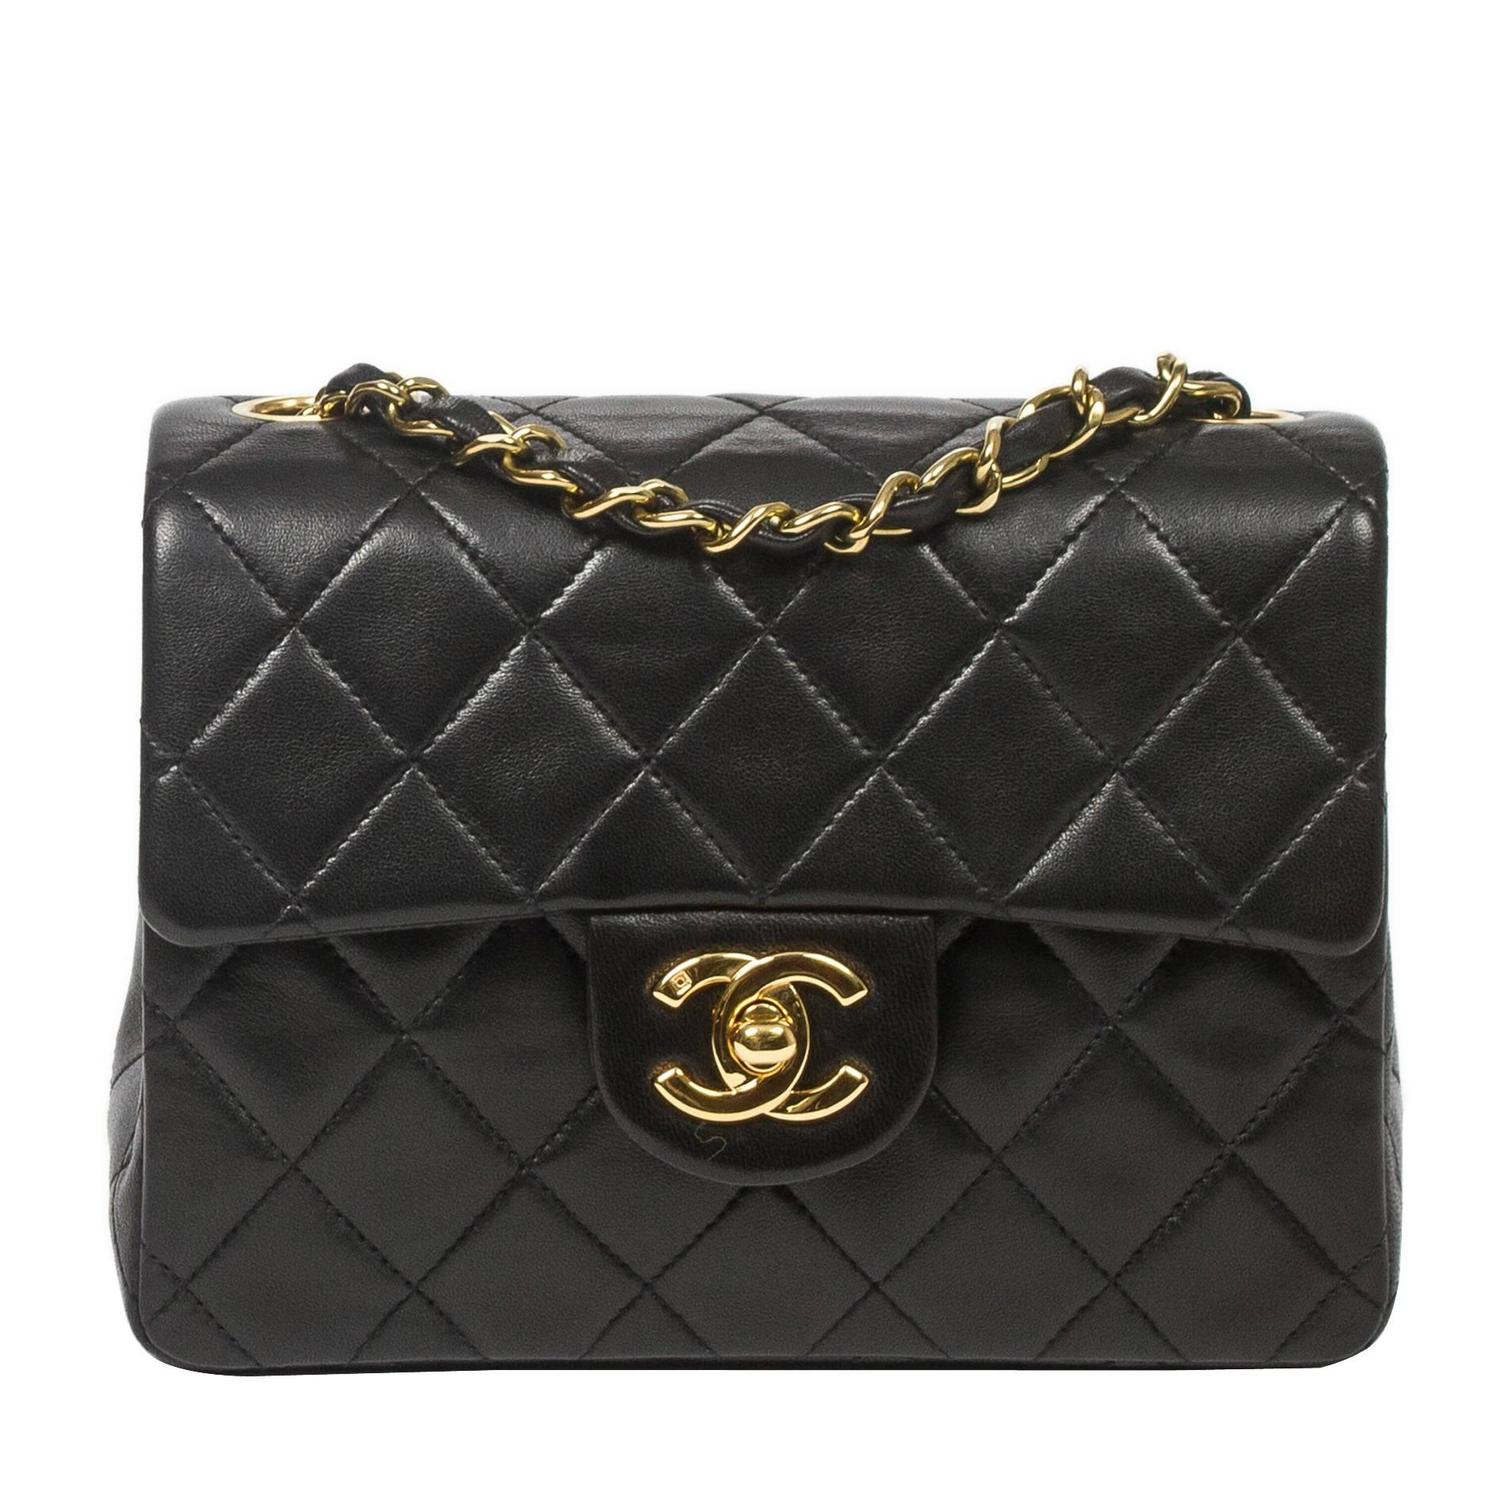 Chanel Classic Mini Flap Black Quilted Leather For Sale At 1stdibs